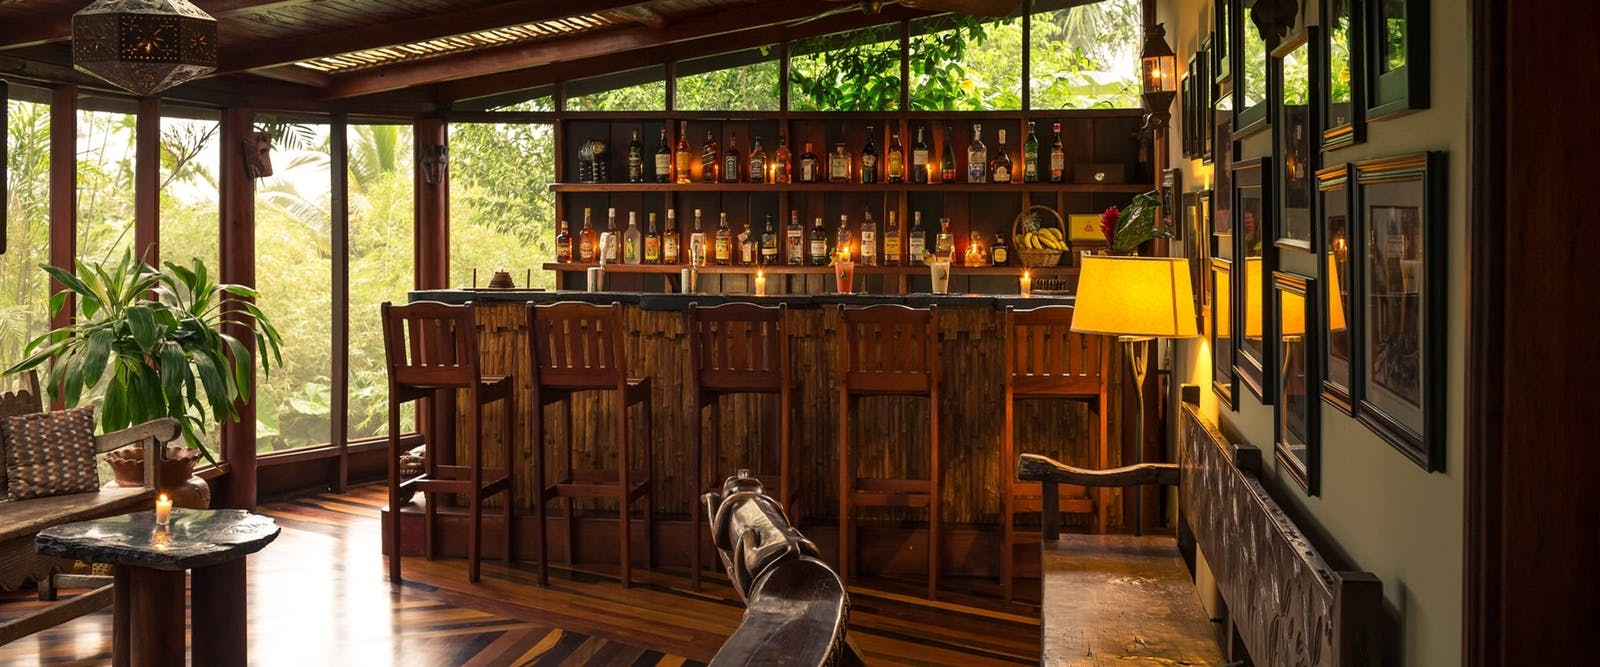 bar area, Blancaneaux Lodge, Belize